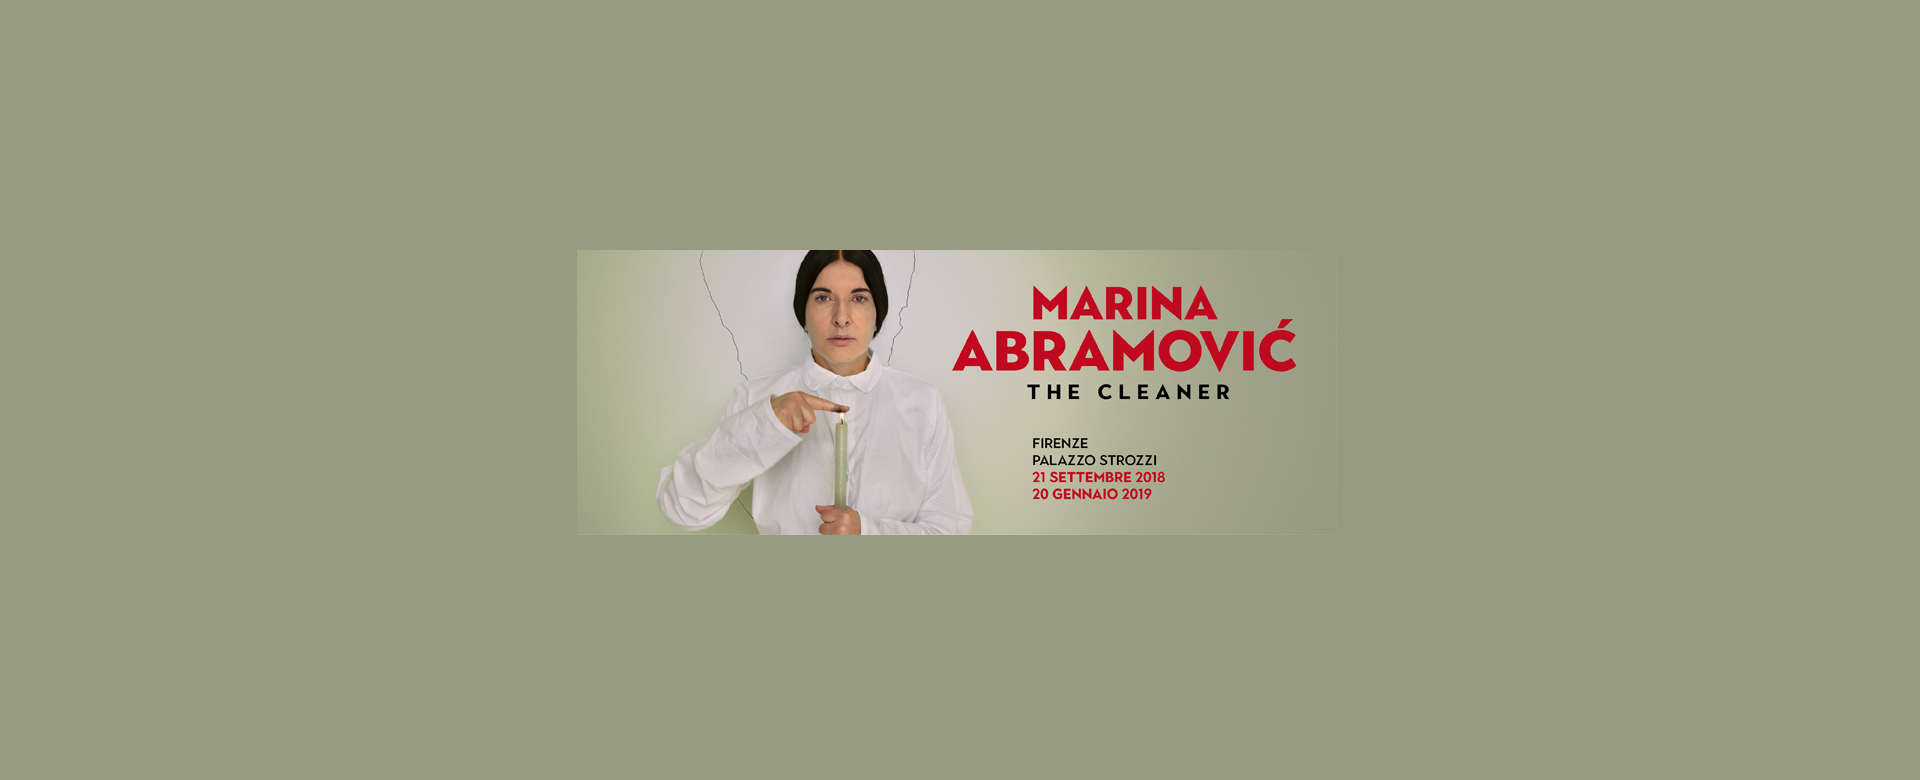 Mostra Marina Abramovic The Cleaner a Firenze